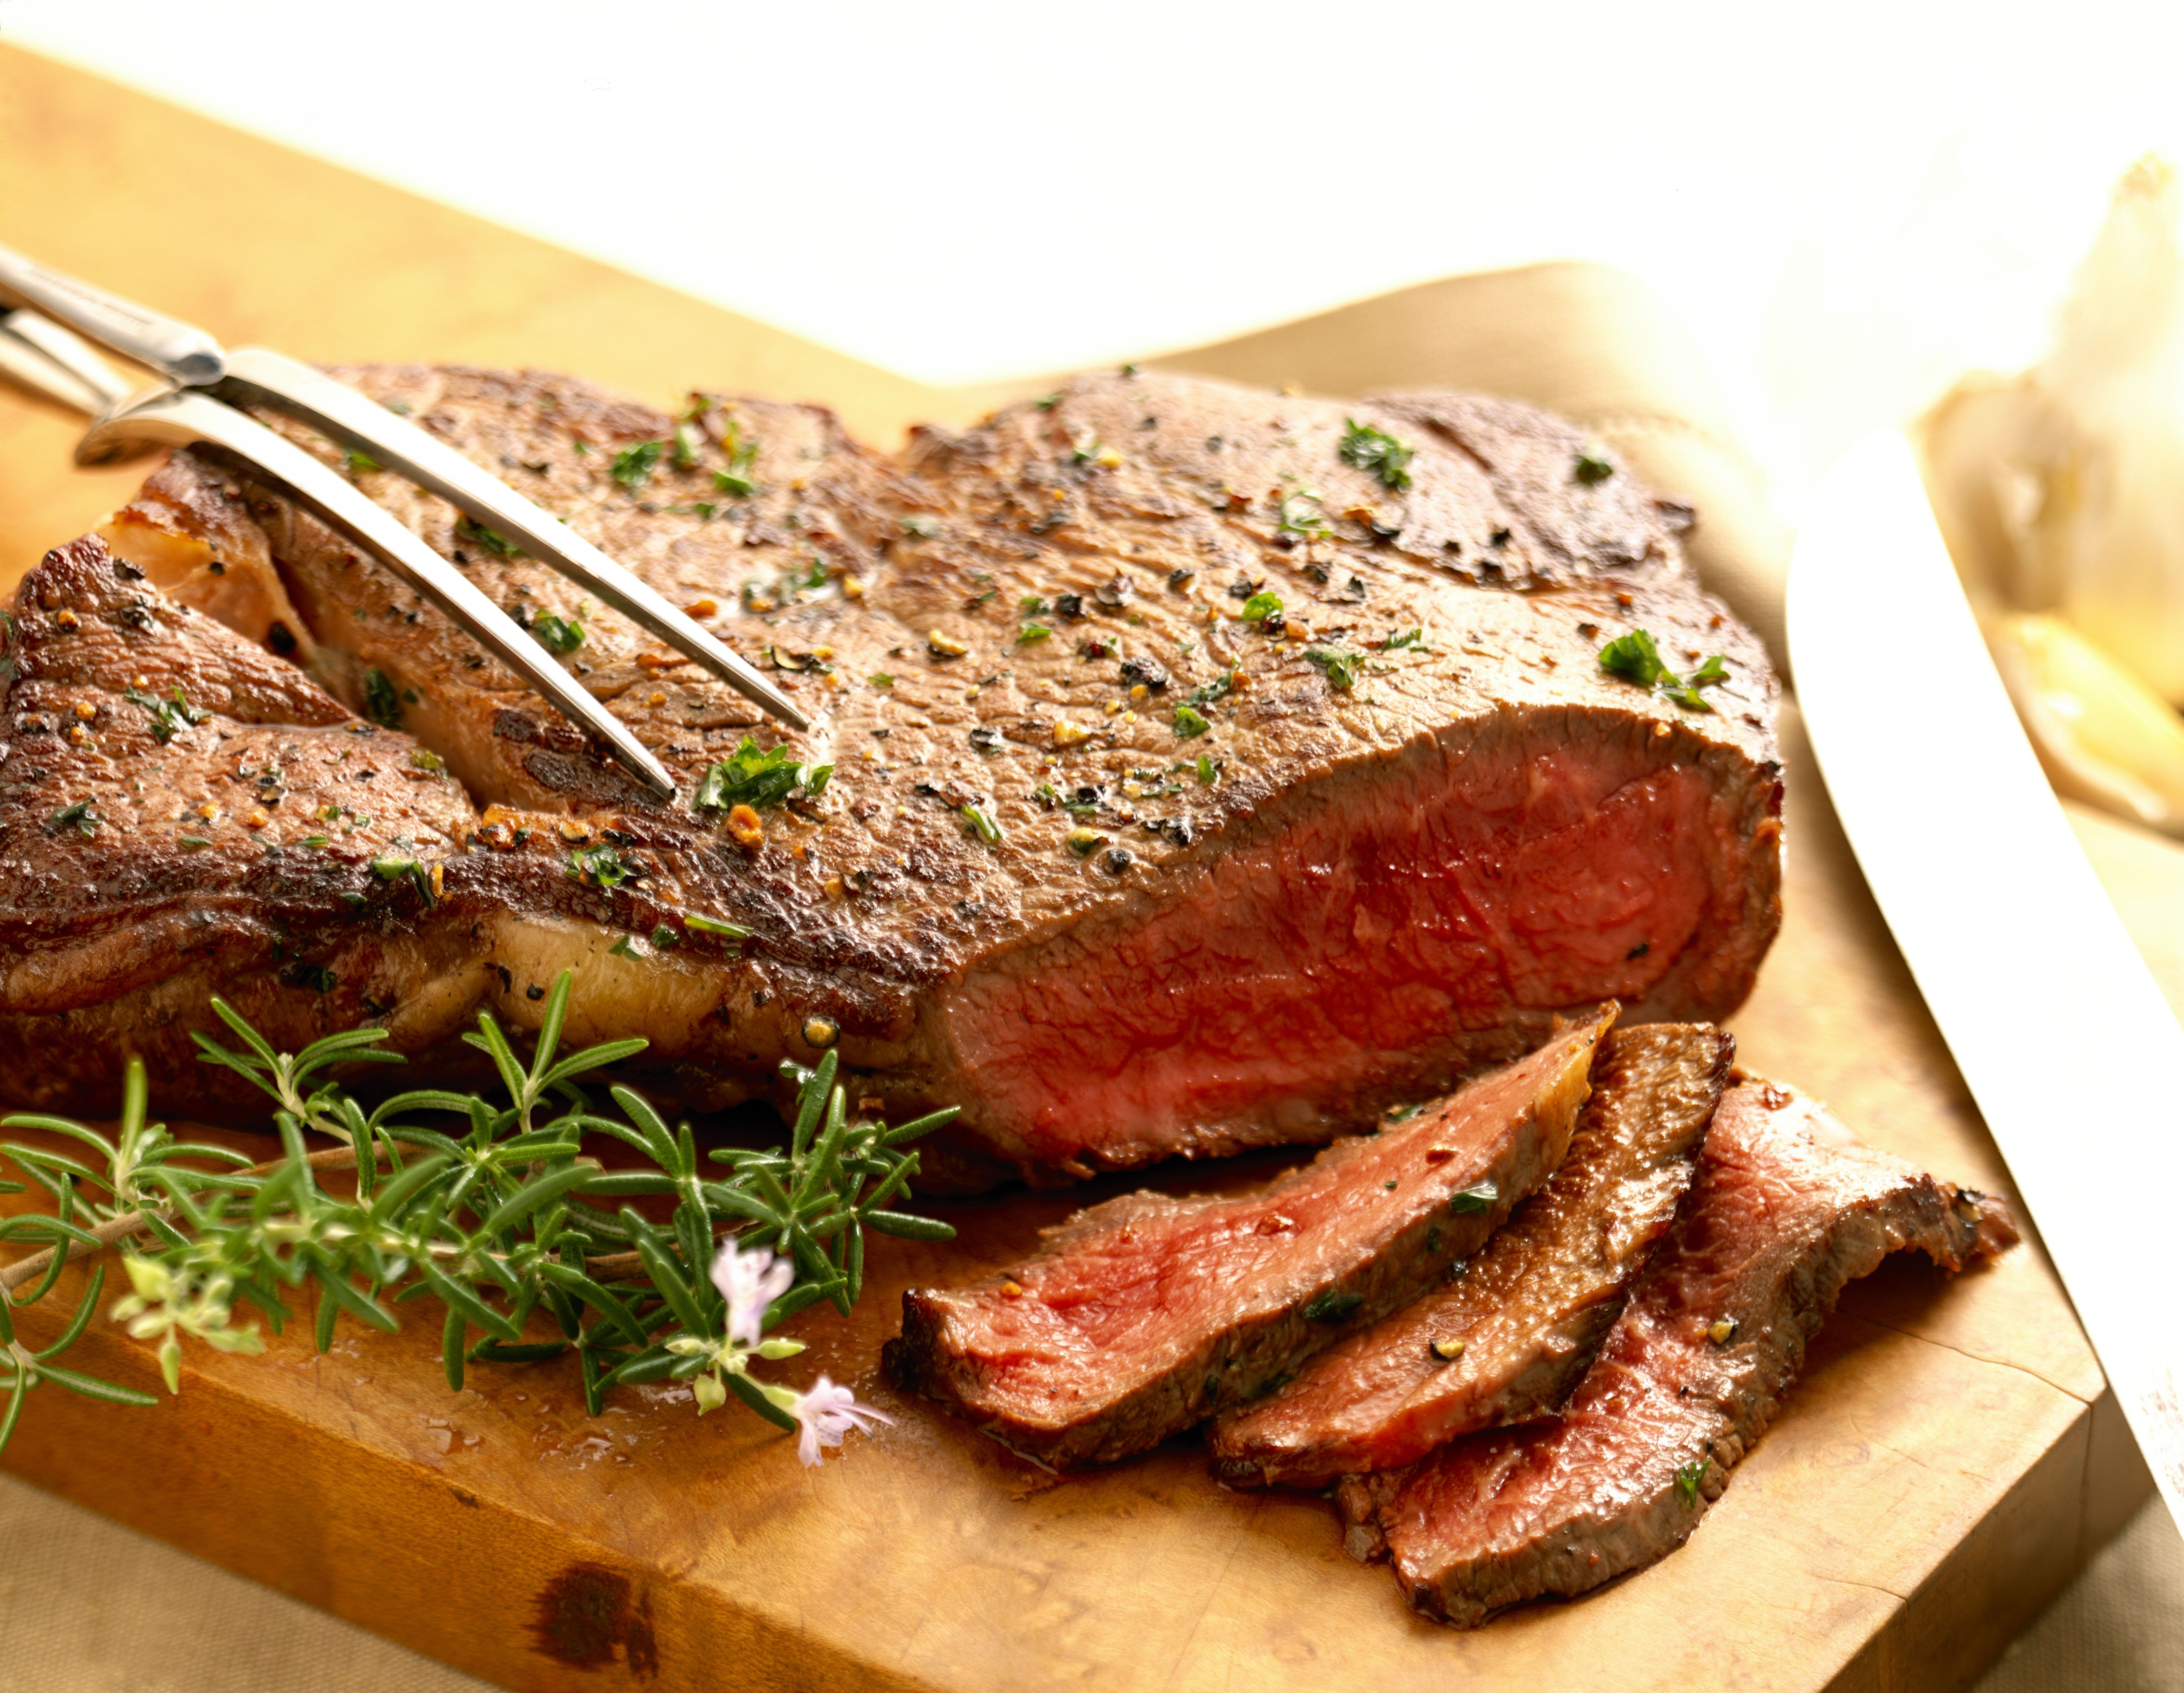 Marinated London broil on a cutting board